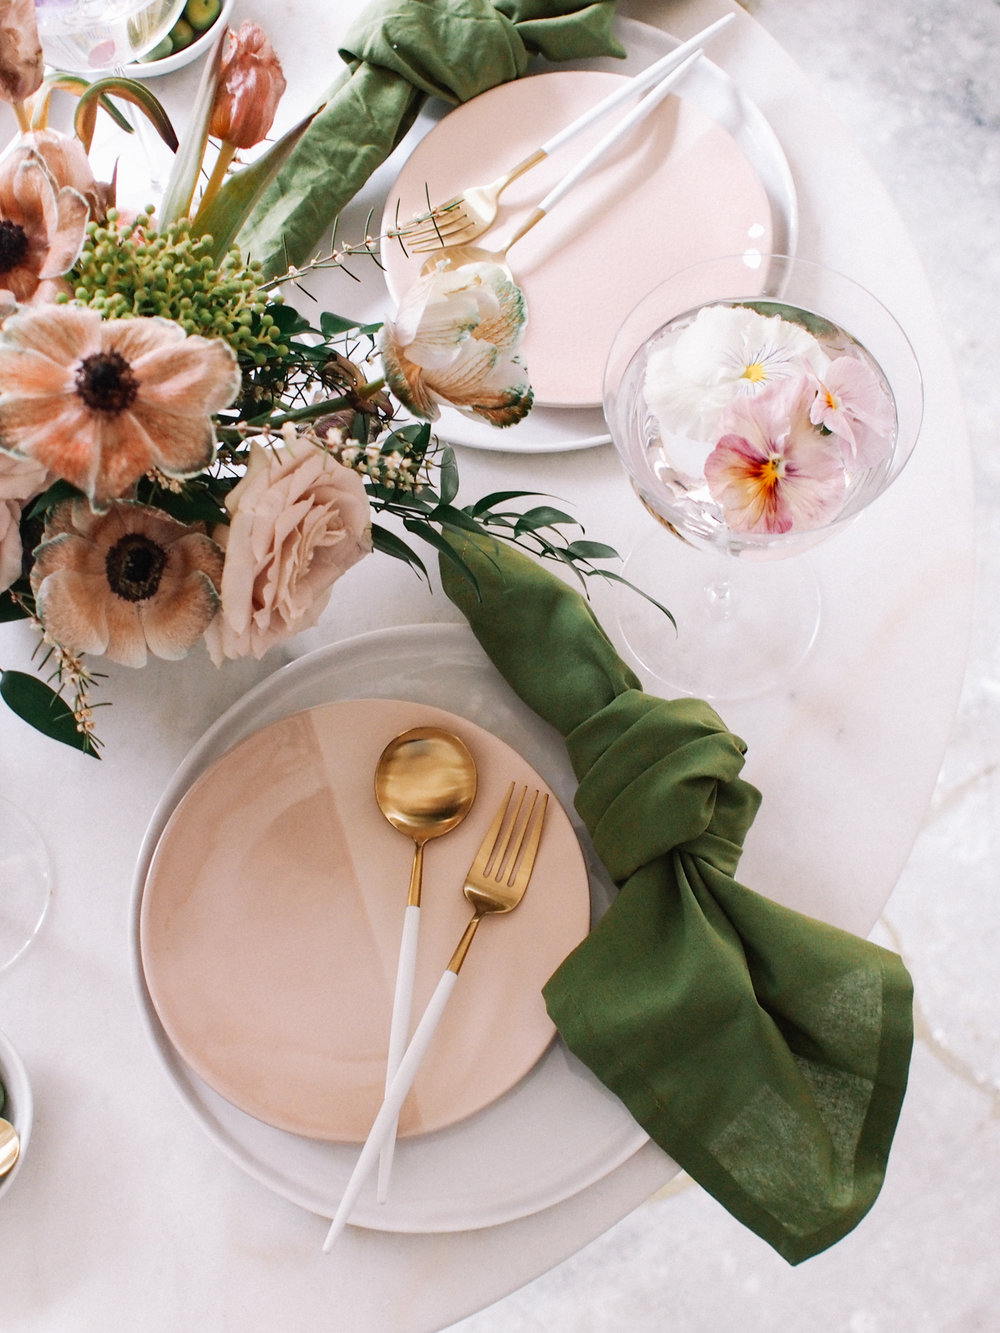 The perfect spring tabletop  | A Fabulous Fete